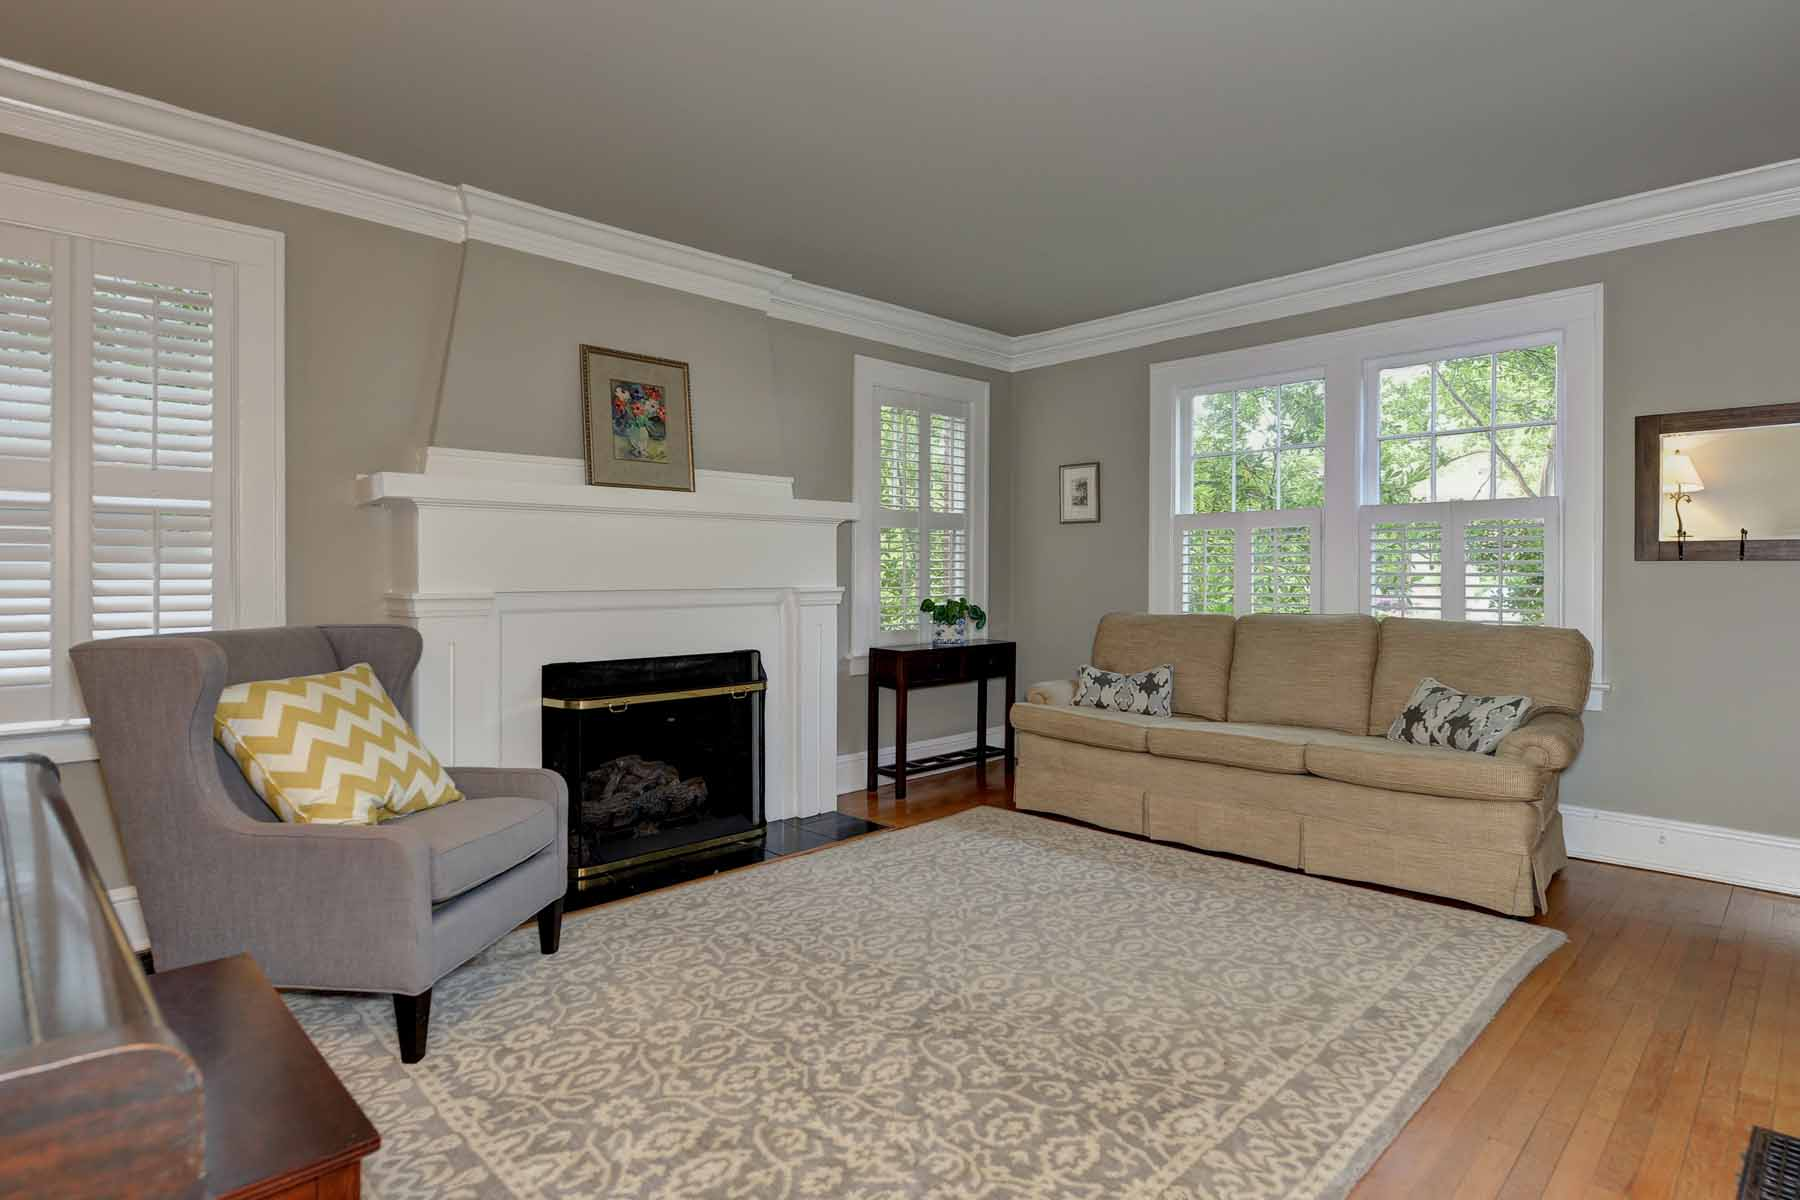 Additional photo for property listing at Charming Morningside Bungalow on Large Private Lot 1106 Amsterdam Avenue NE Atlanta, Georgië 30306 Verenigde Staten